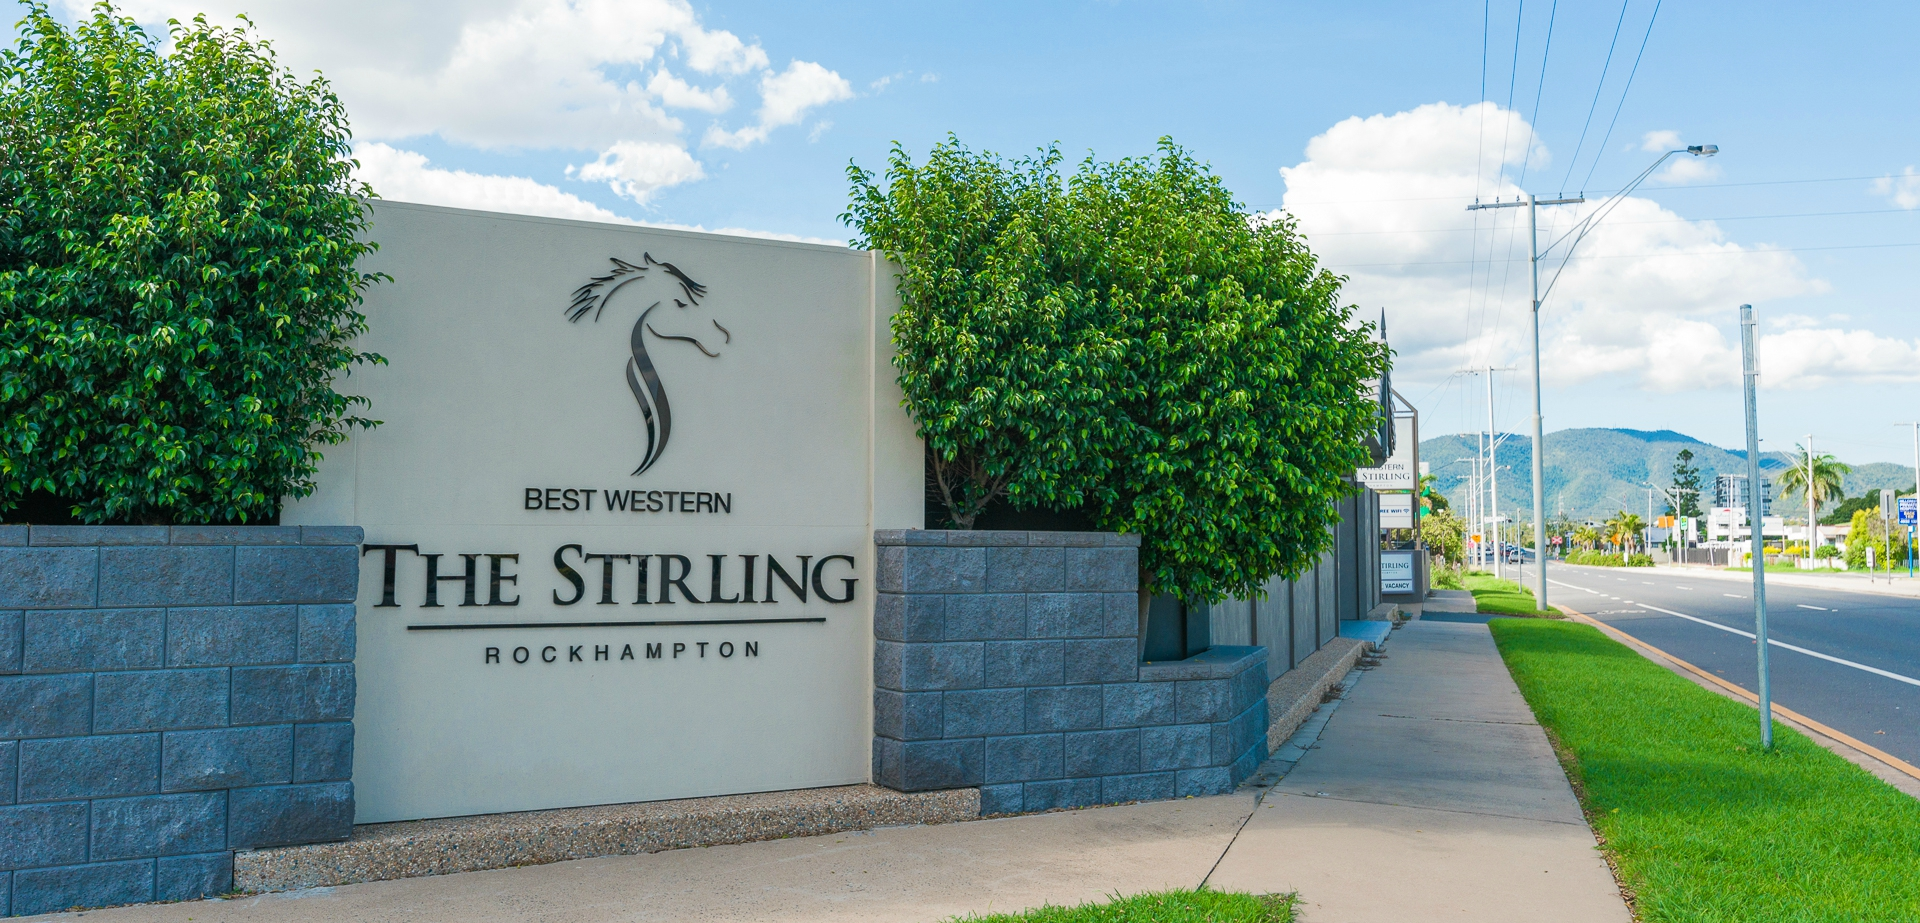 The Stirling Rockhampton